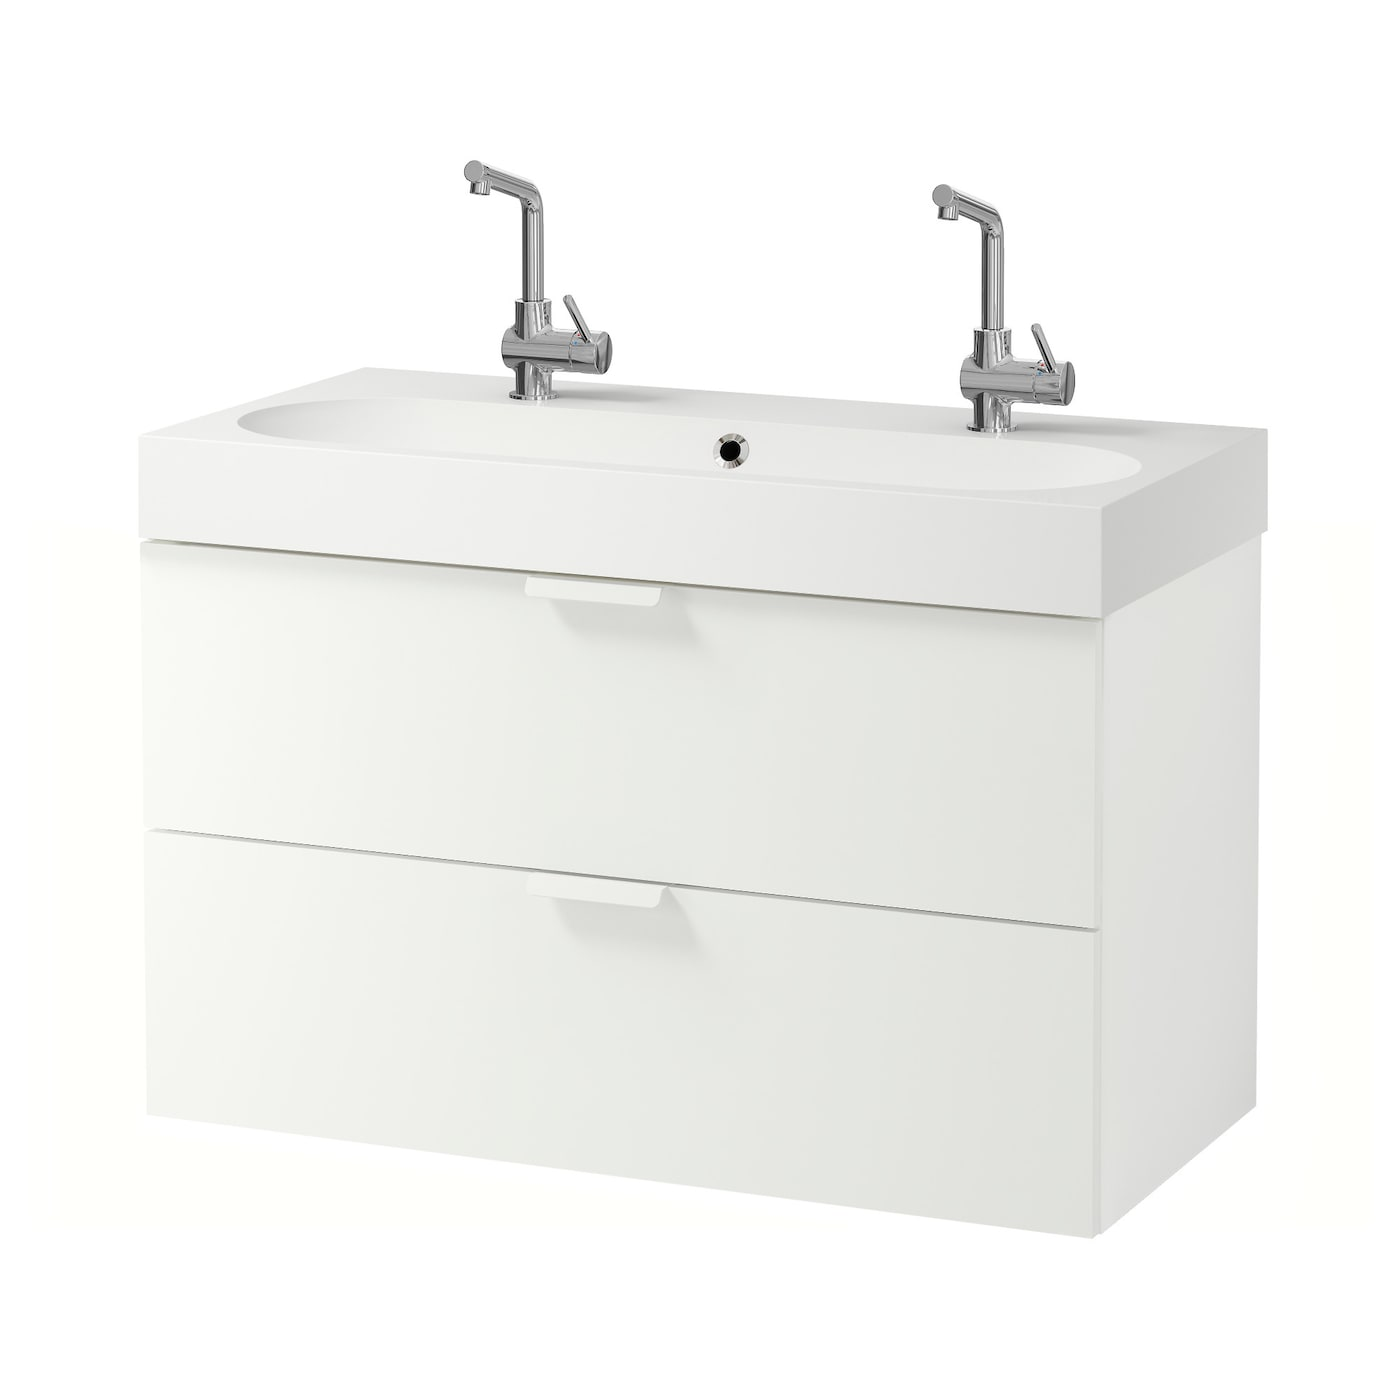 br viken godmorgon meuble lavabo 2tir blanc 100 x 48 x 68 cm ikea. Black Bedroom Furniture Sets. Home Design Ideas